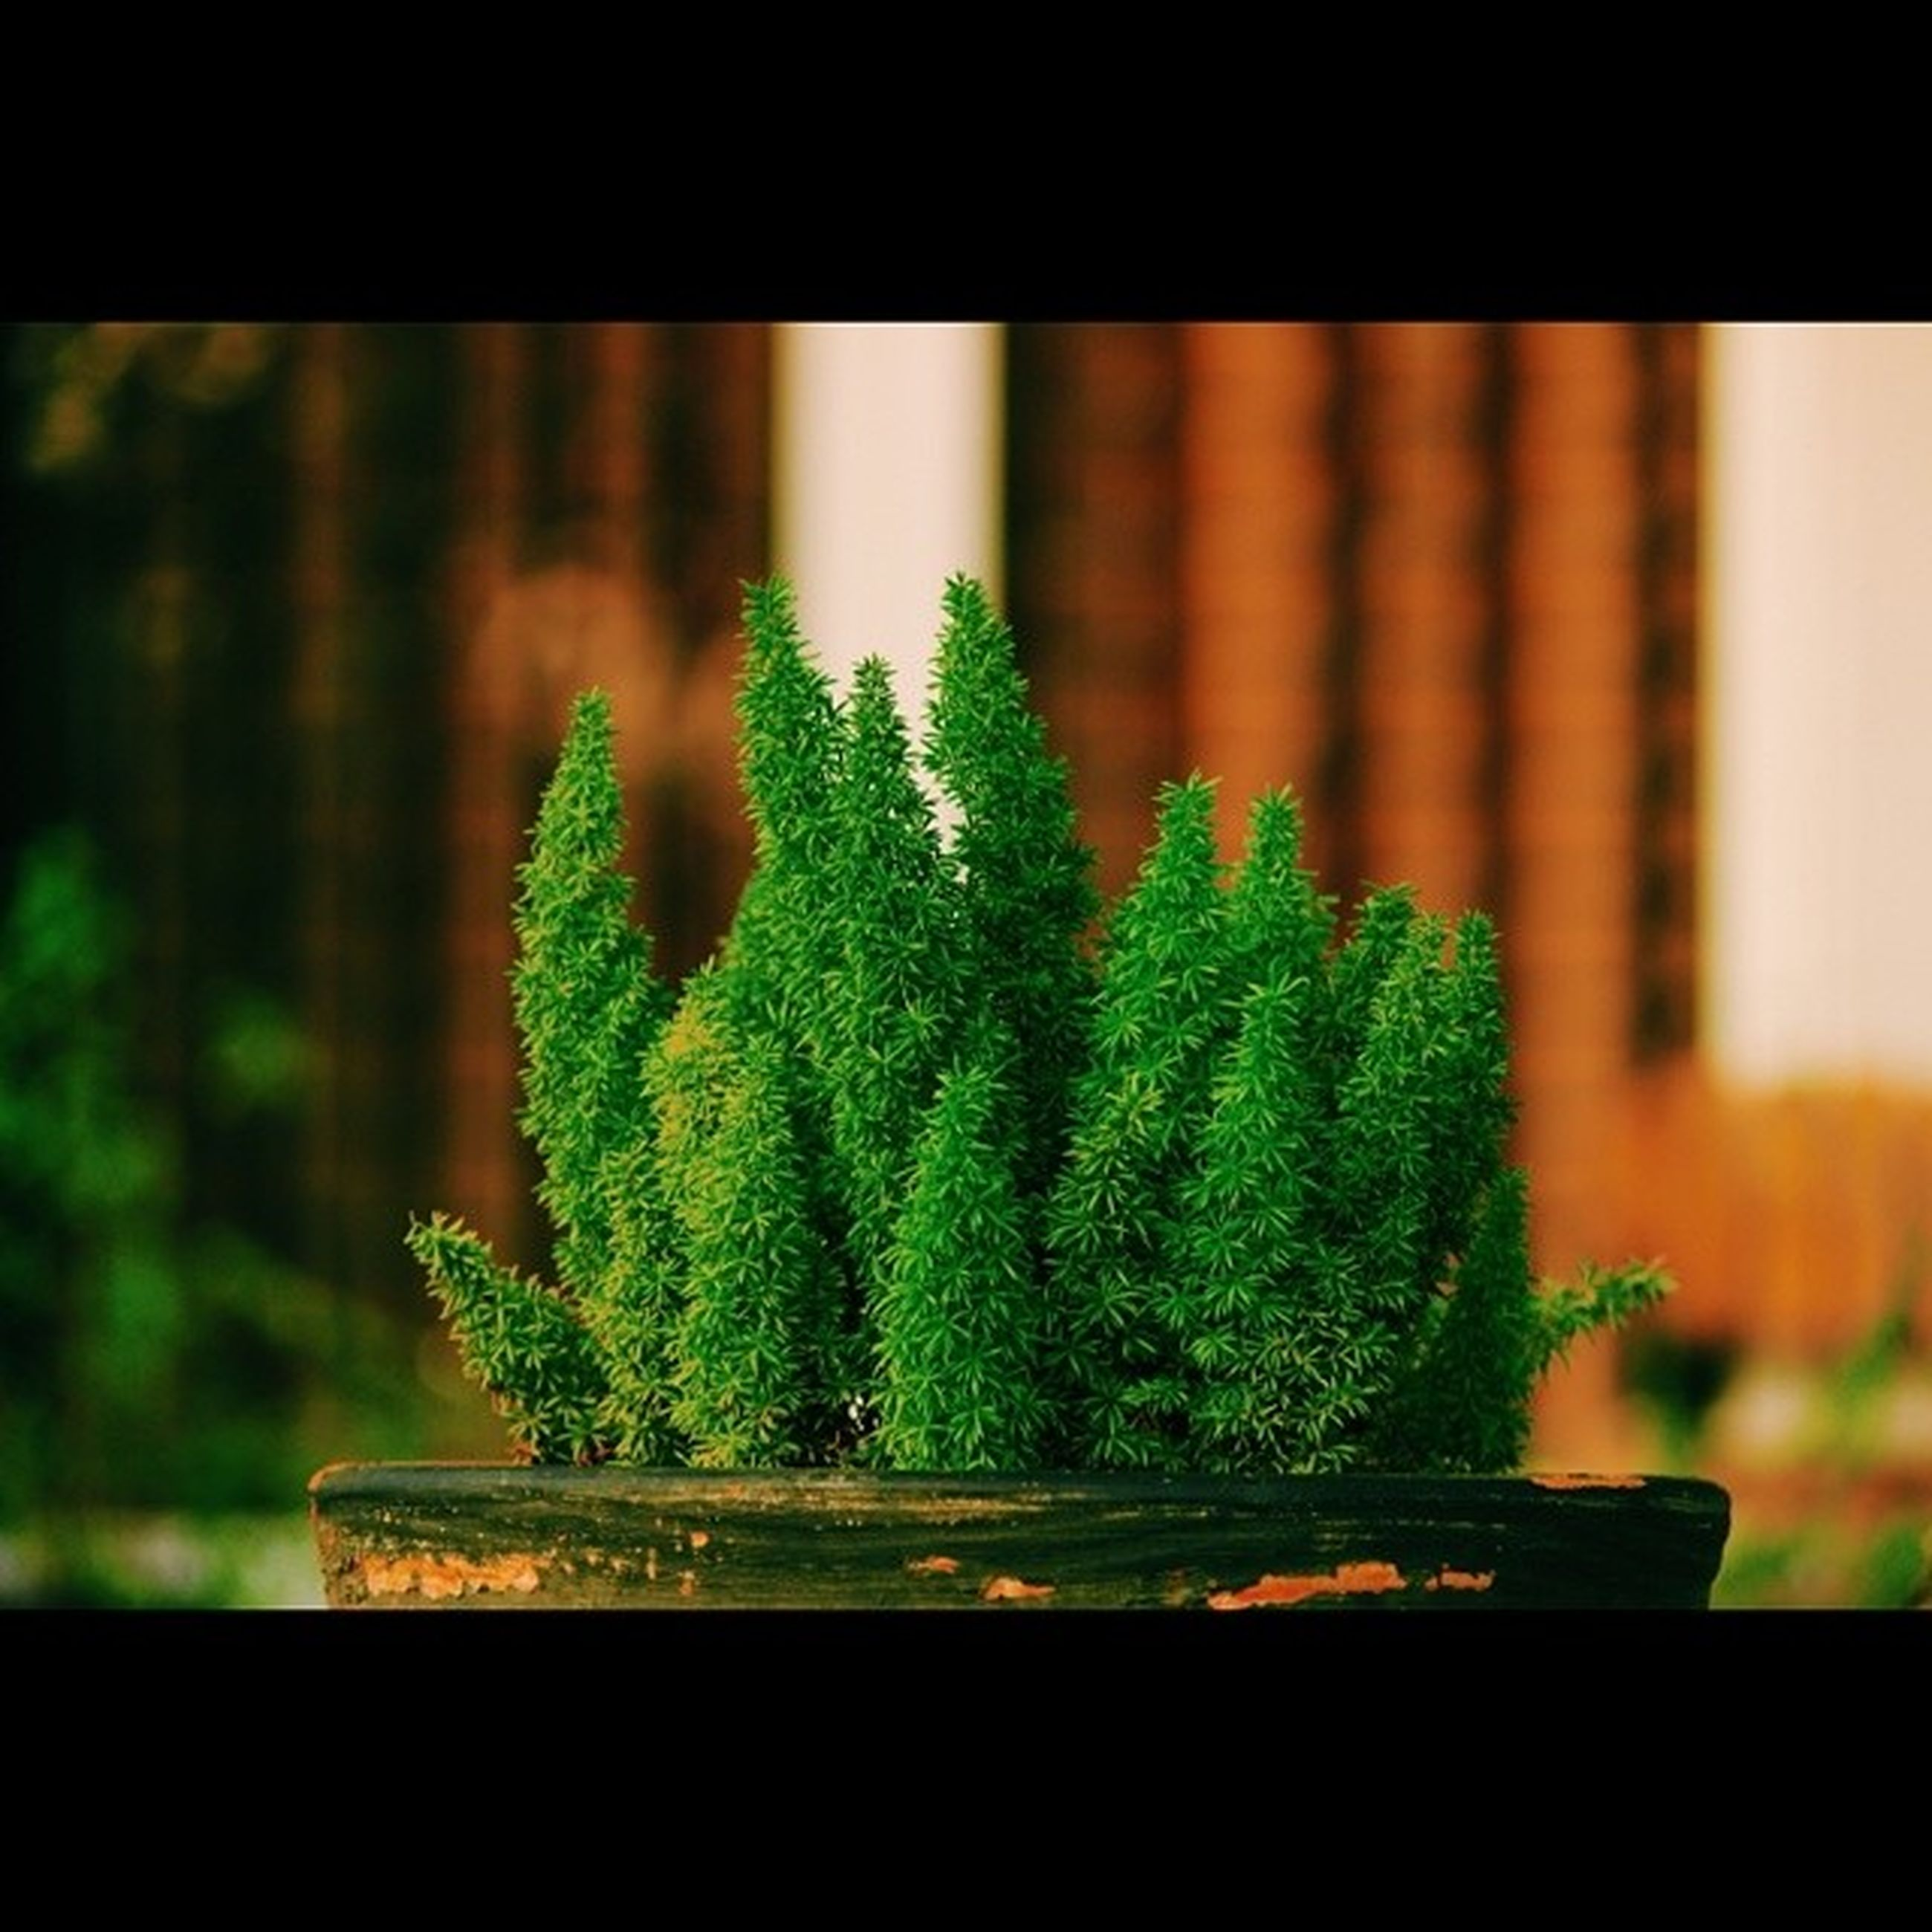 focus on foreground, growth, close-up, plant, potted plant, green color, indoors, selective focus, nature, freshness, leaf, tree, flower, transparent, window, glass - material, day, no people, flower pot, beauty in nature